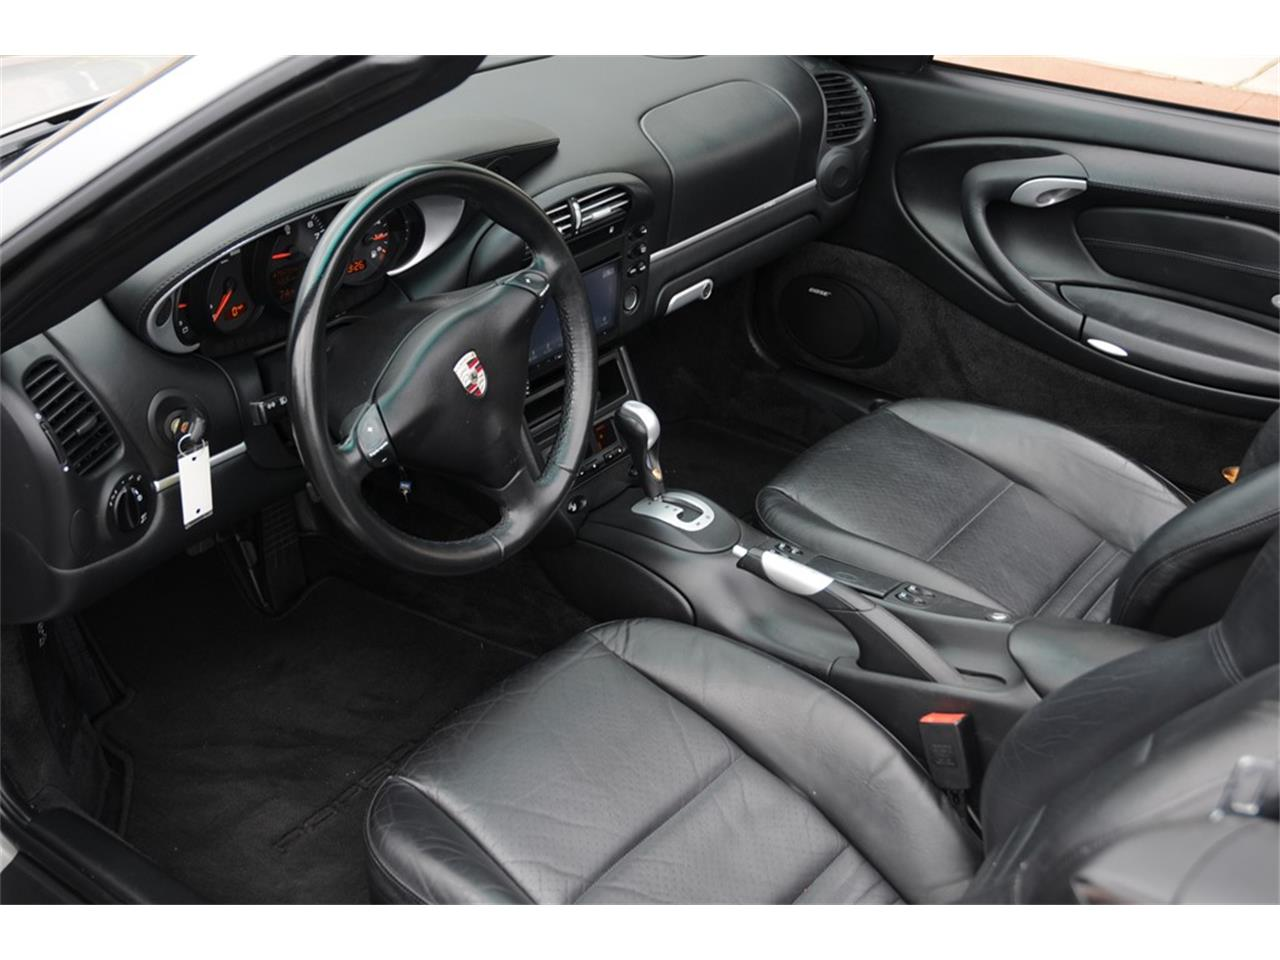 Large Picture of '04 Porsche 911 Carrera 4S Cabriolet Offered by Star European Inc. - QK9K